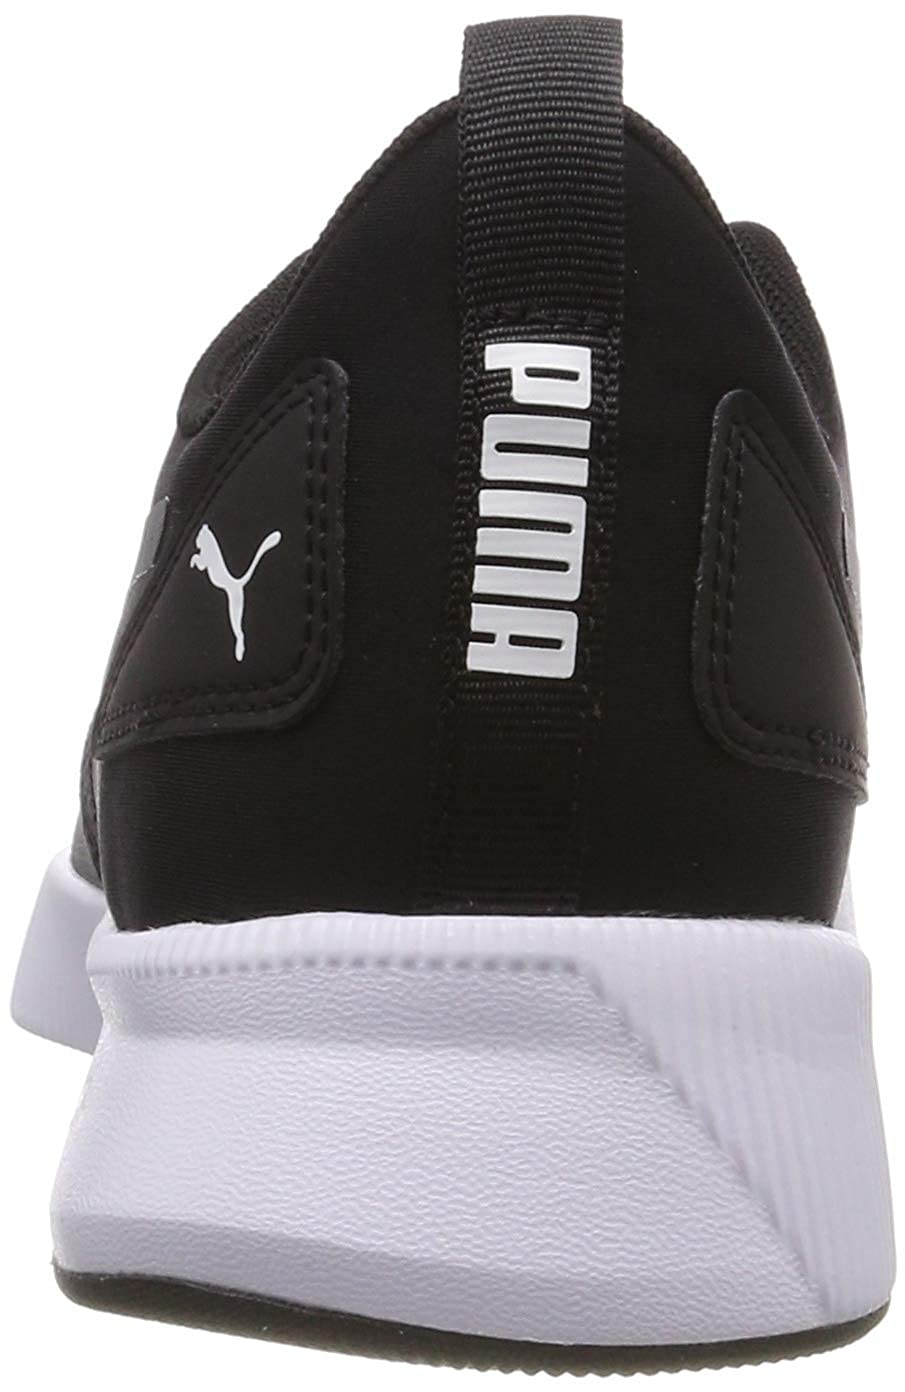 check out fb236 9bd8d Puma Unisex Adults  Flyer Runner Competition Running Shoes  Amazon.co.uk   Shoes   Bags